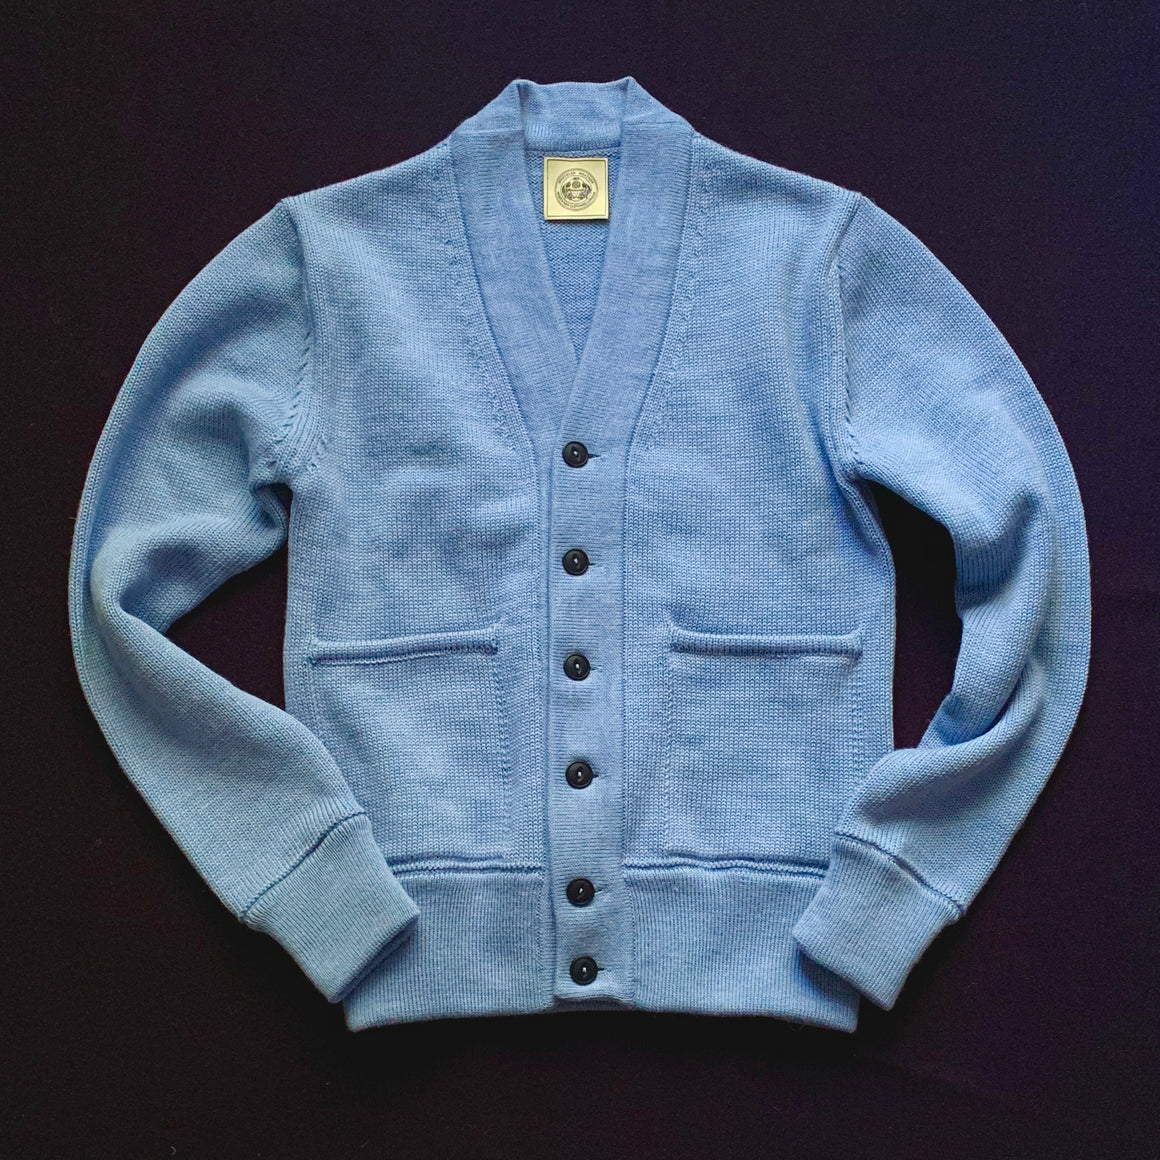 NEW - THE ENGINEER CARDIGAN - LTD EDITION SKY BLUE